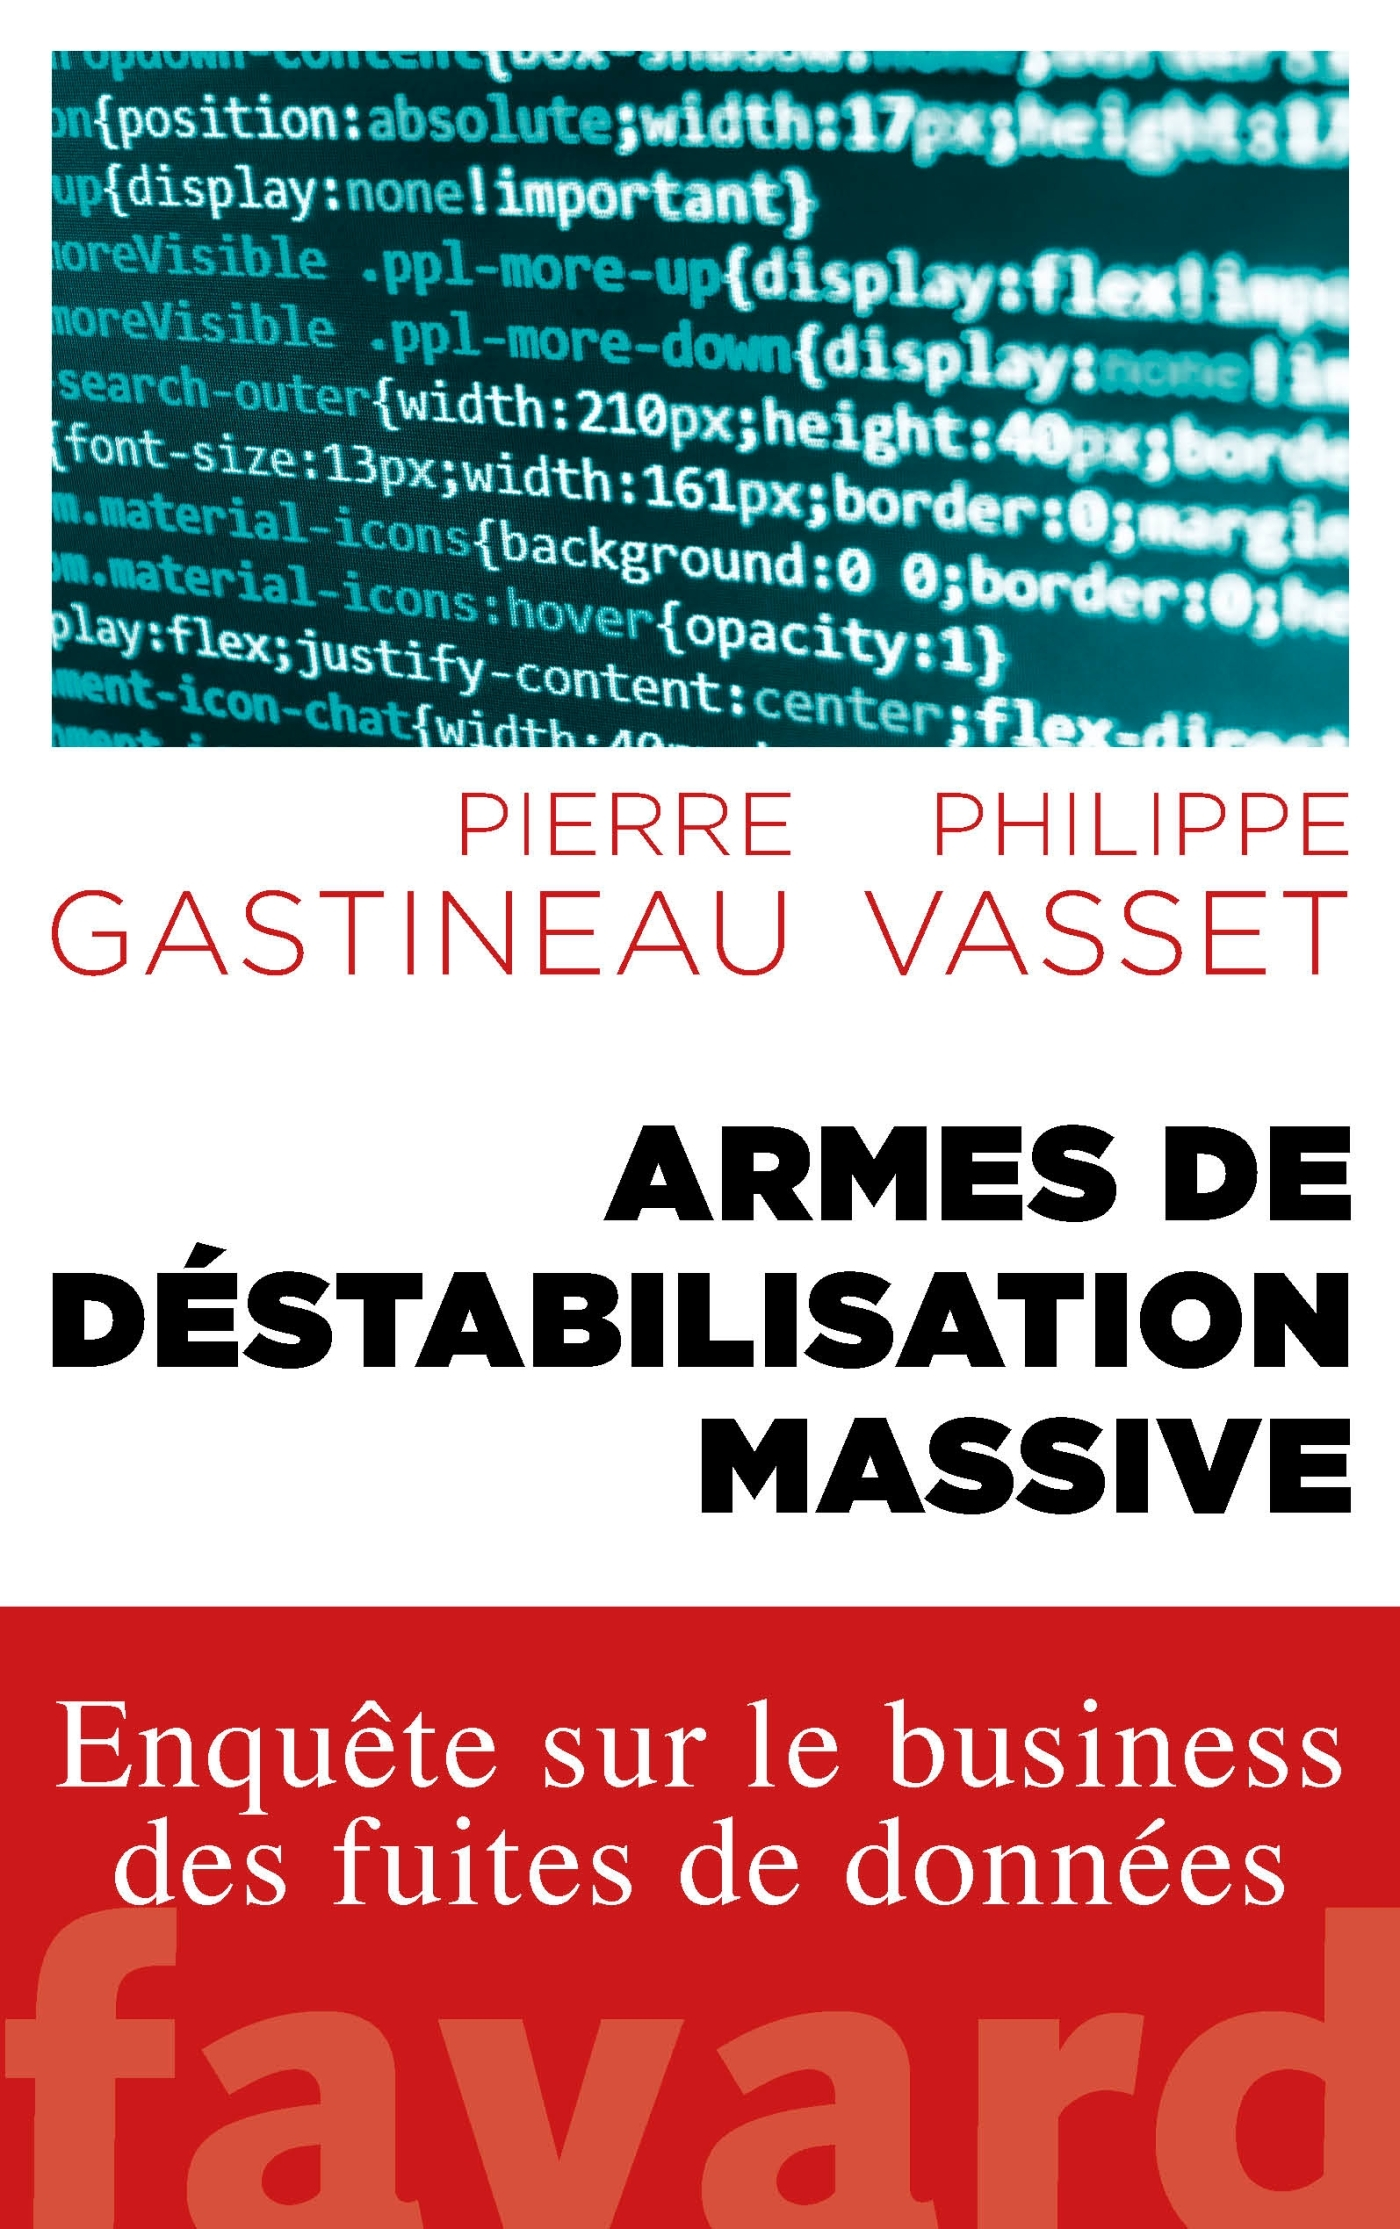 ARMES DE DESTABILISATION MASSIVE